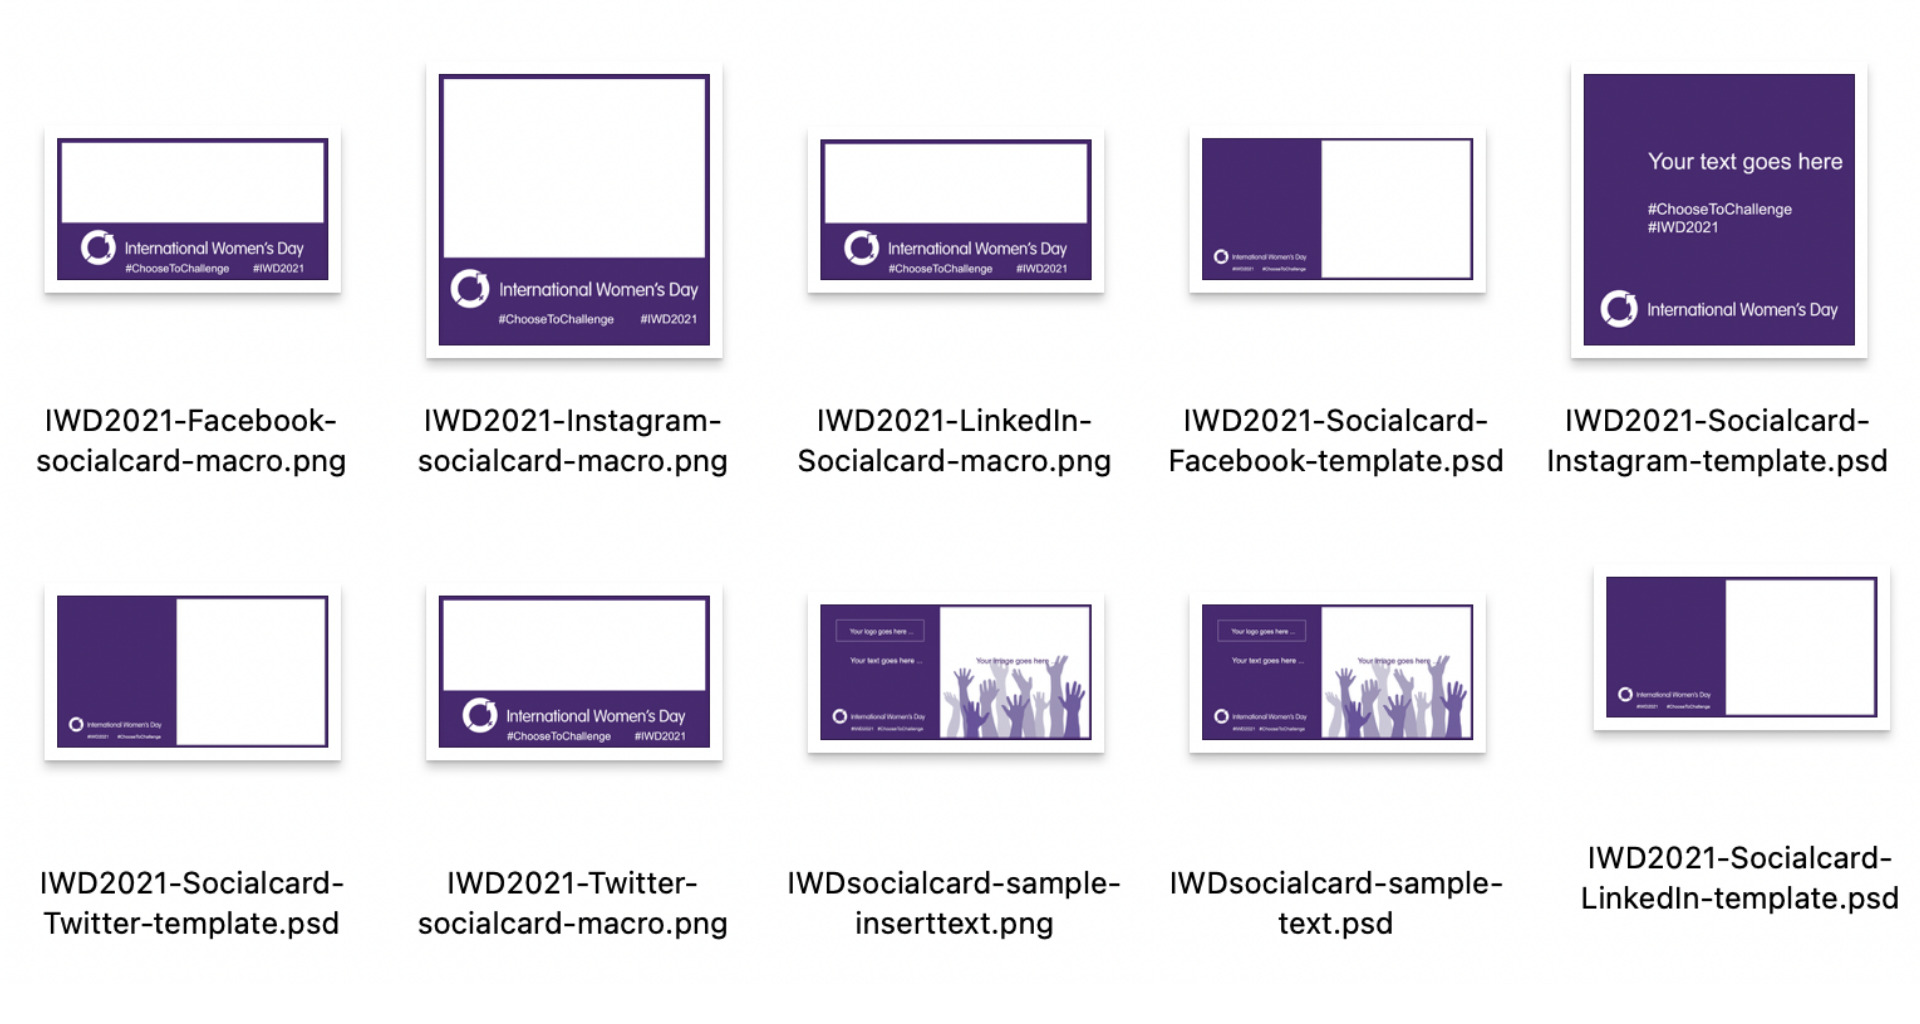 Image displays IWD's full range of social media templates